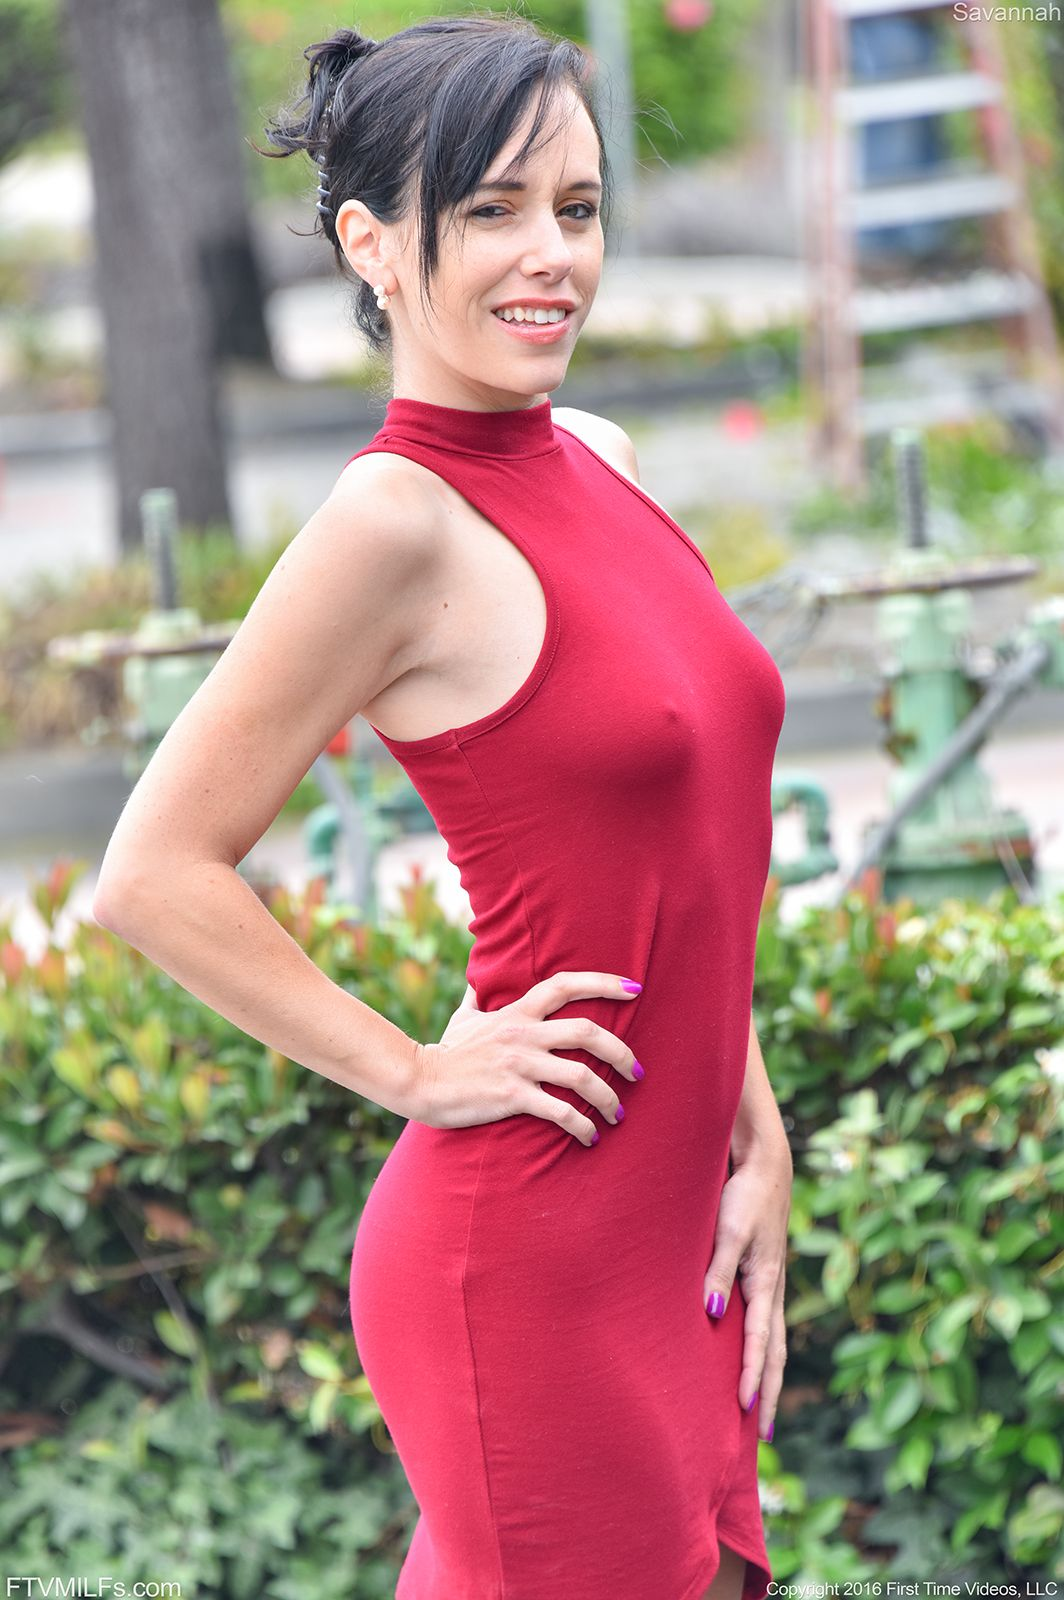 Savannah - LADY IN THE RED DRESS 01